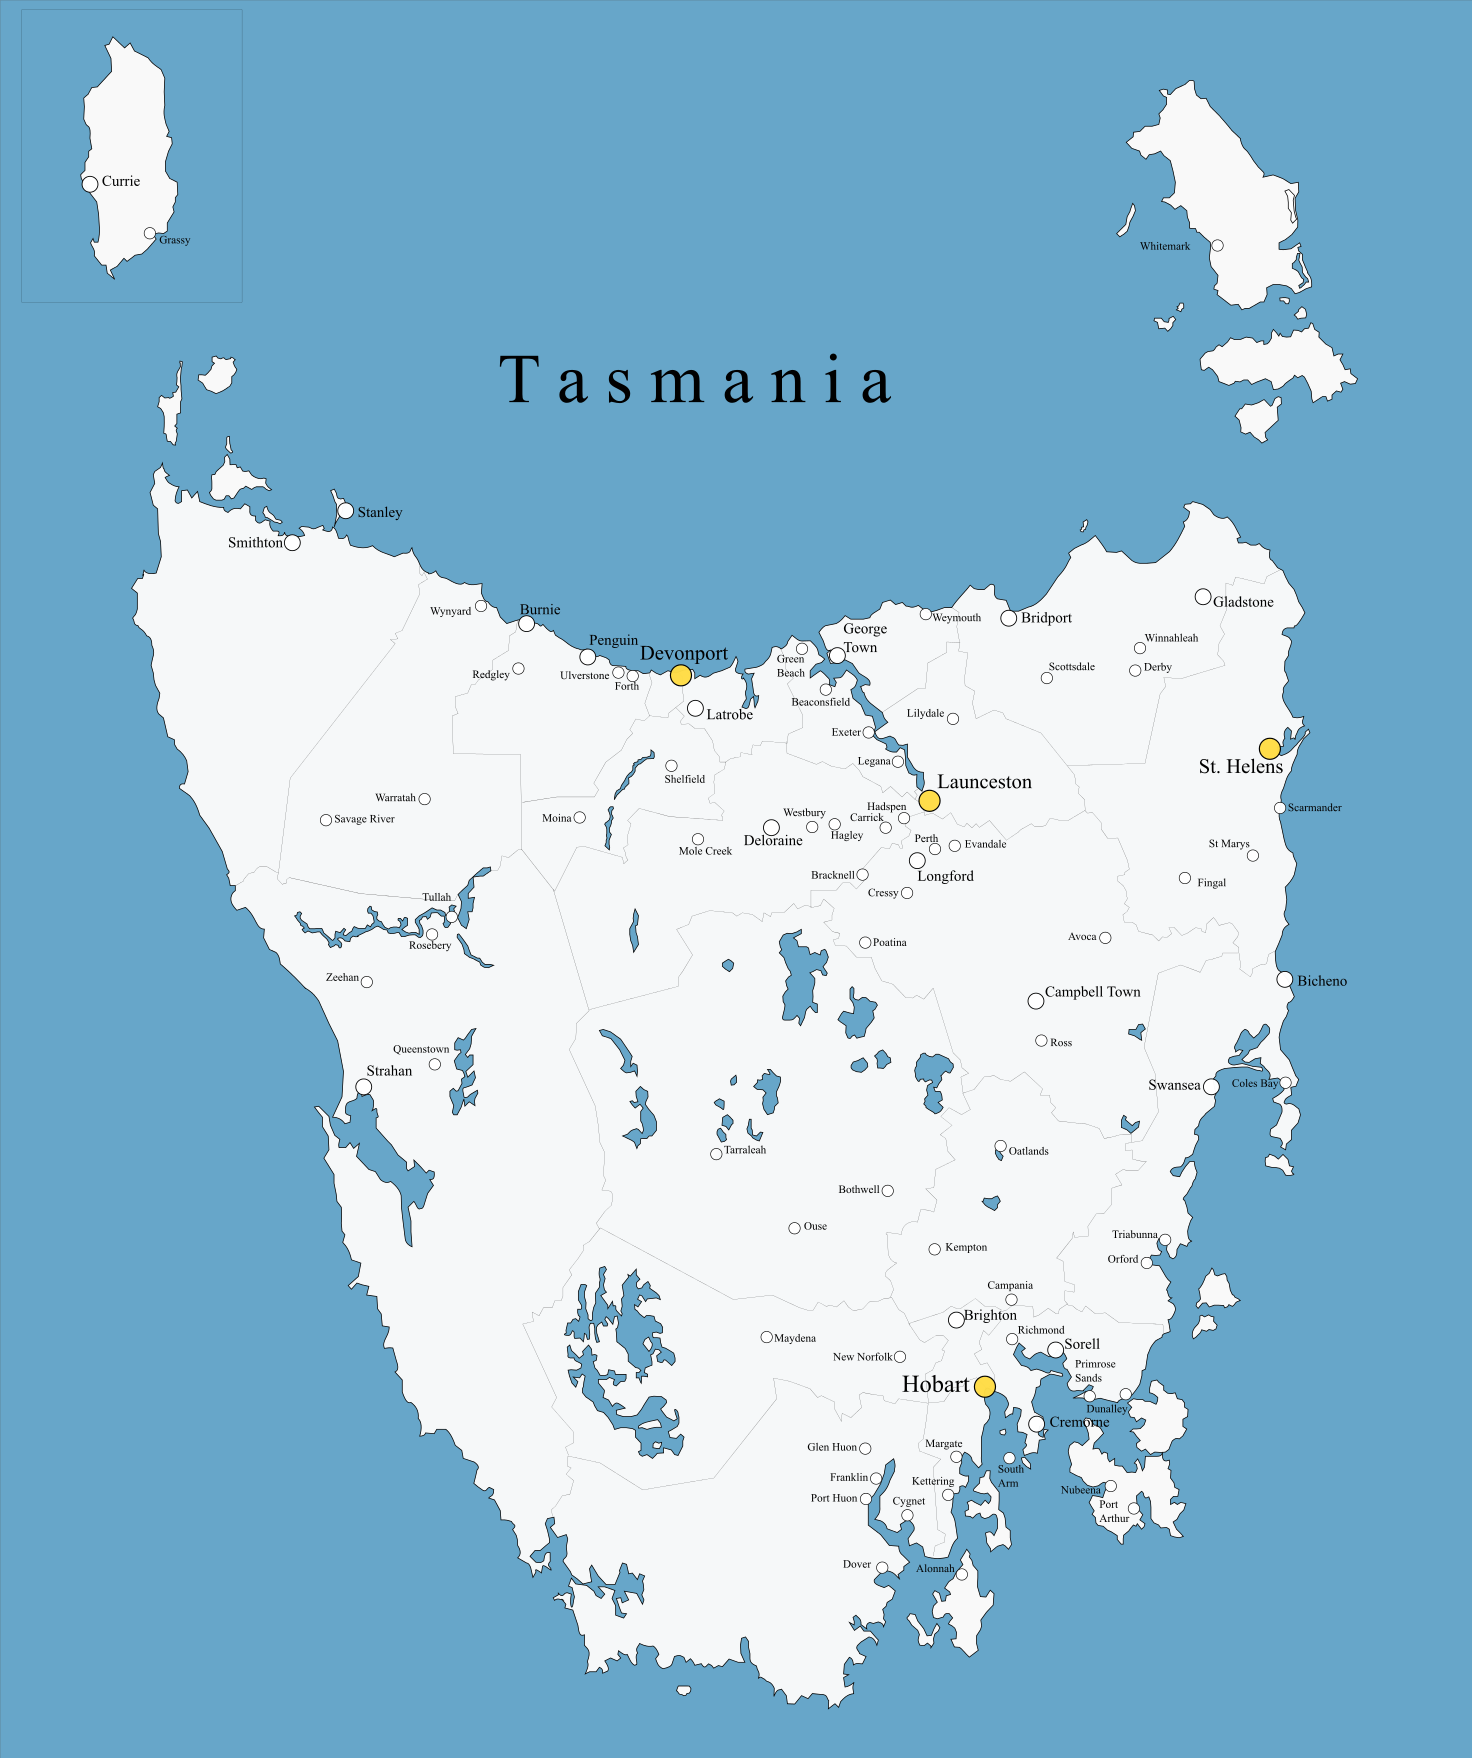 Australia Map With Cities And Towns.Cities And Towns Of Tasmania Maps Of Australia Australasia